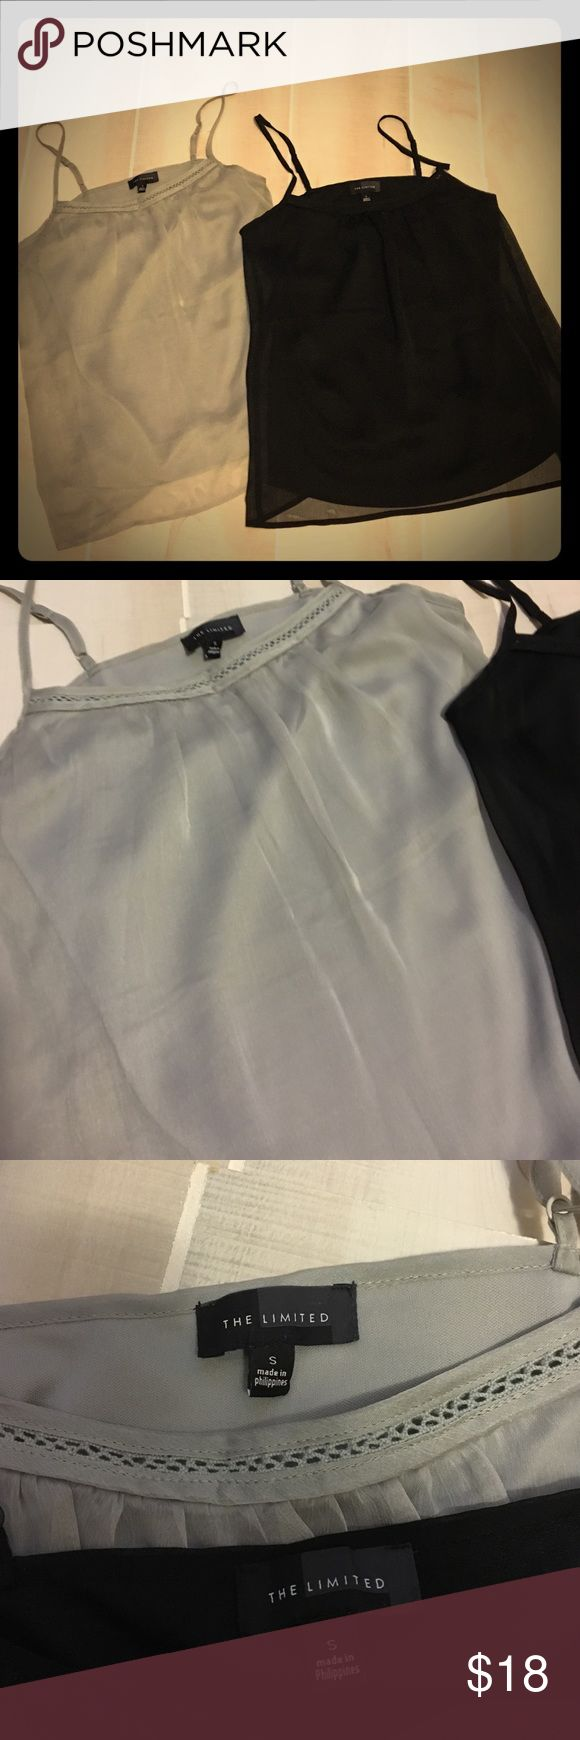 Black and silver cami's! The perfect cami by Limited! Black and silver cami's are lined with sheer flowy overlay. Can be worn under a jacket, for layering, and/or by itself! Great condition. Willing to sell separate if interested, just send me a message! The Limited Tops Camisoles